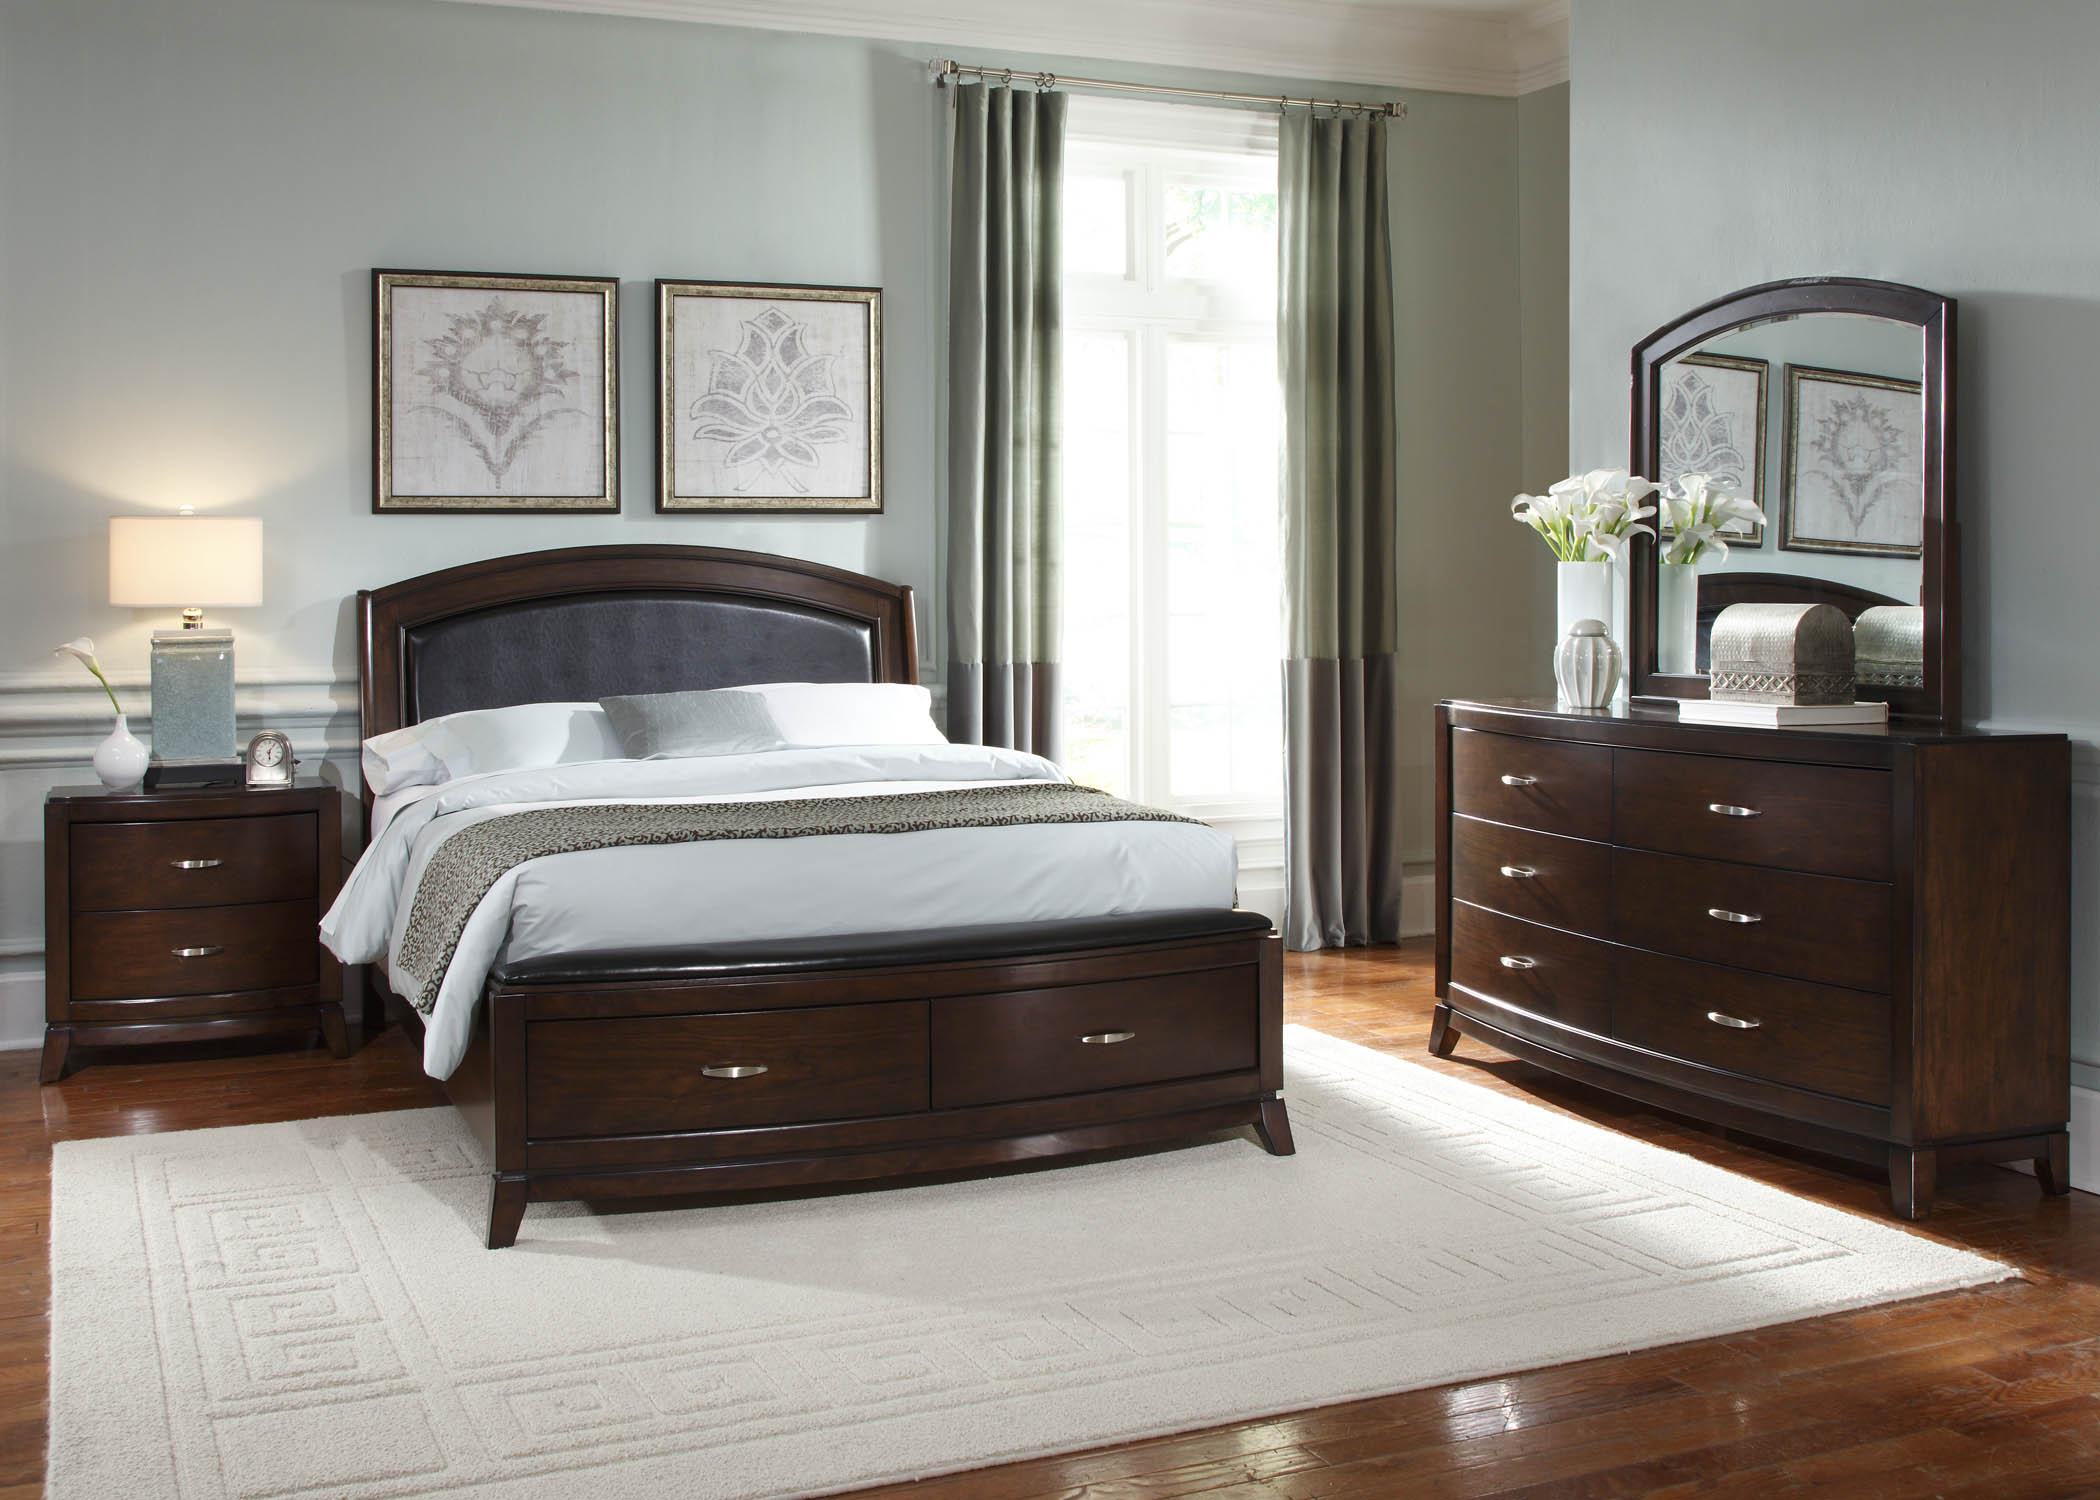 Liberty Furniture Avalon Queen Bedroom Group 3 - Item Number: 505-BR-QSBDMN